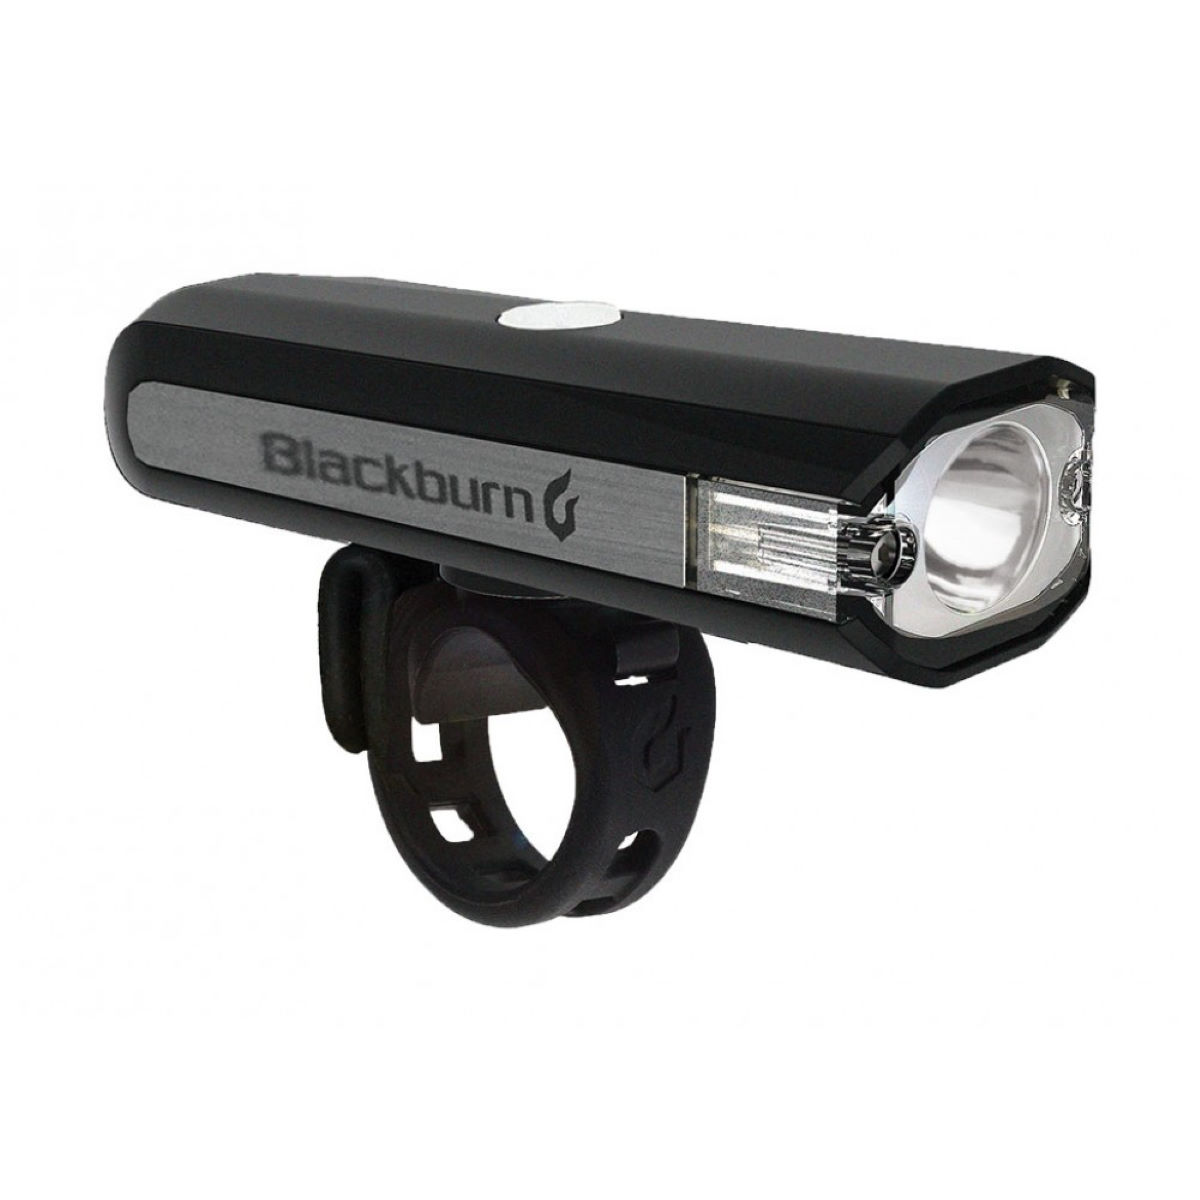 Blackburn Central 350 Micro Front Light - Luces delanteras